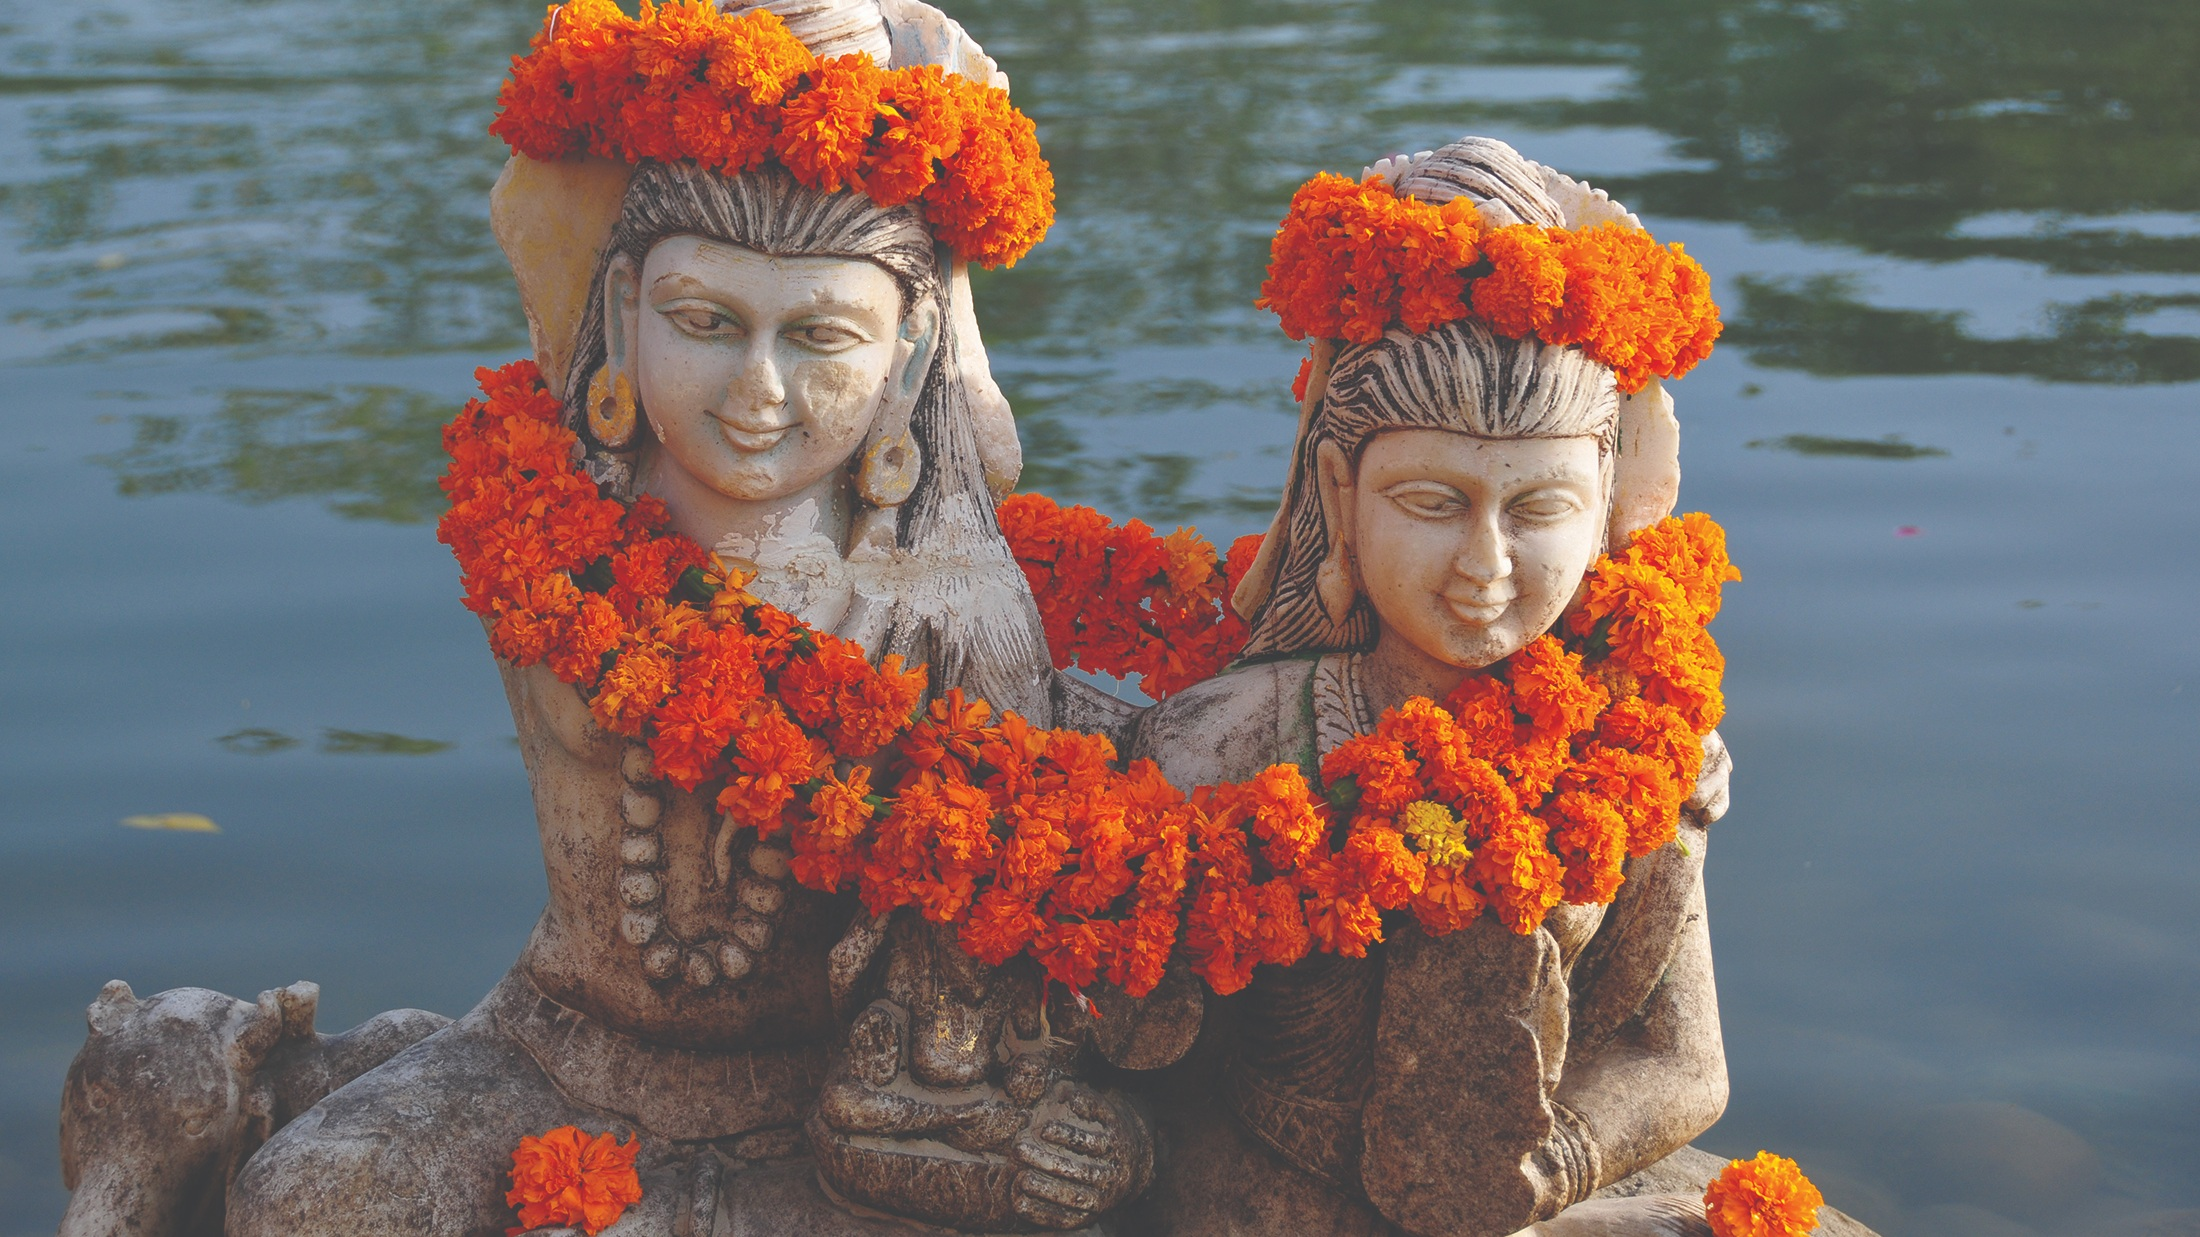 THE BEST EXOTIC MARIGOLD TOUR INDIA -